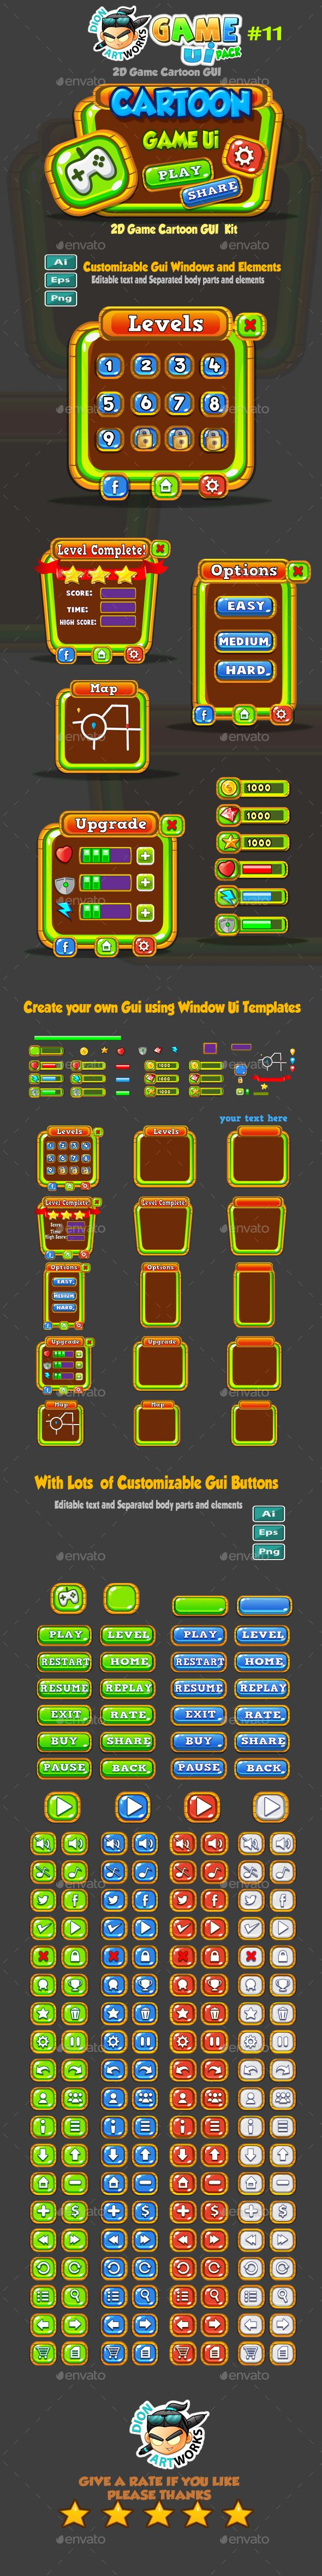 Cartoon Game Ui Pack 11 - User Interfaces #Game #Assets Download here:  https://graphicriver.net/item/cartoon-game-ui-pack-11/17444009?ref=alena994